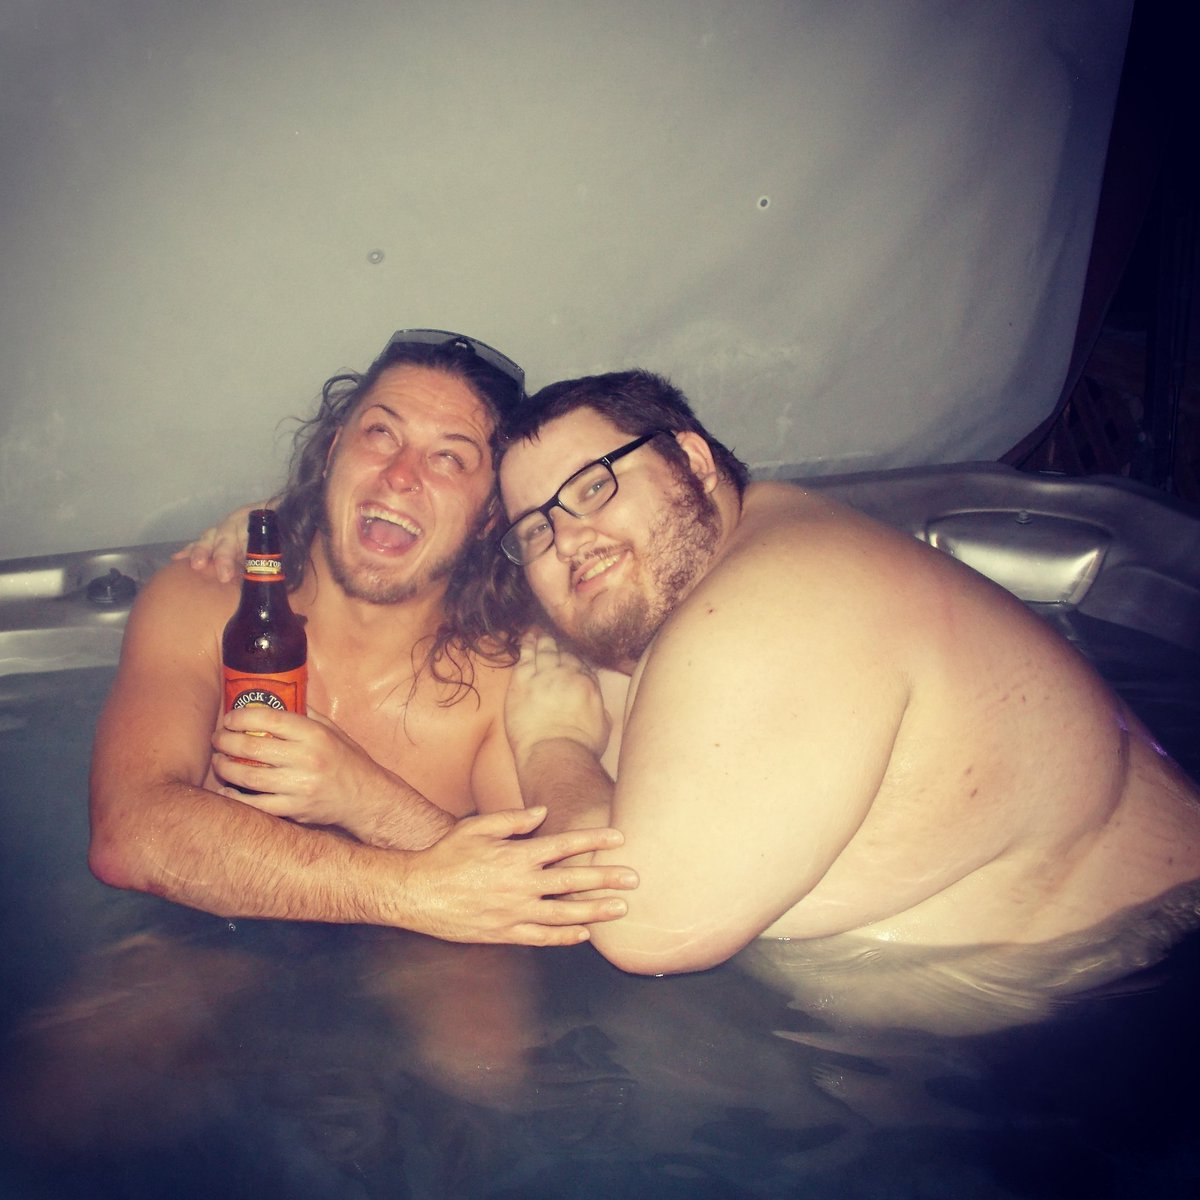 The Bad Boy @JANELABABY stepped in the Hot Tub https://t.co/GJ8eNpfB70